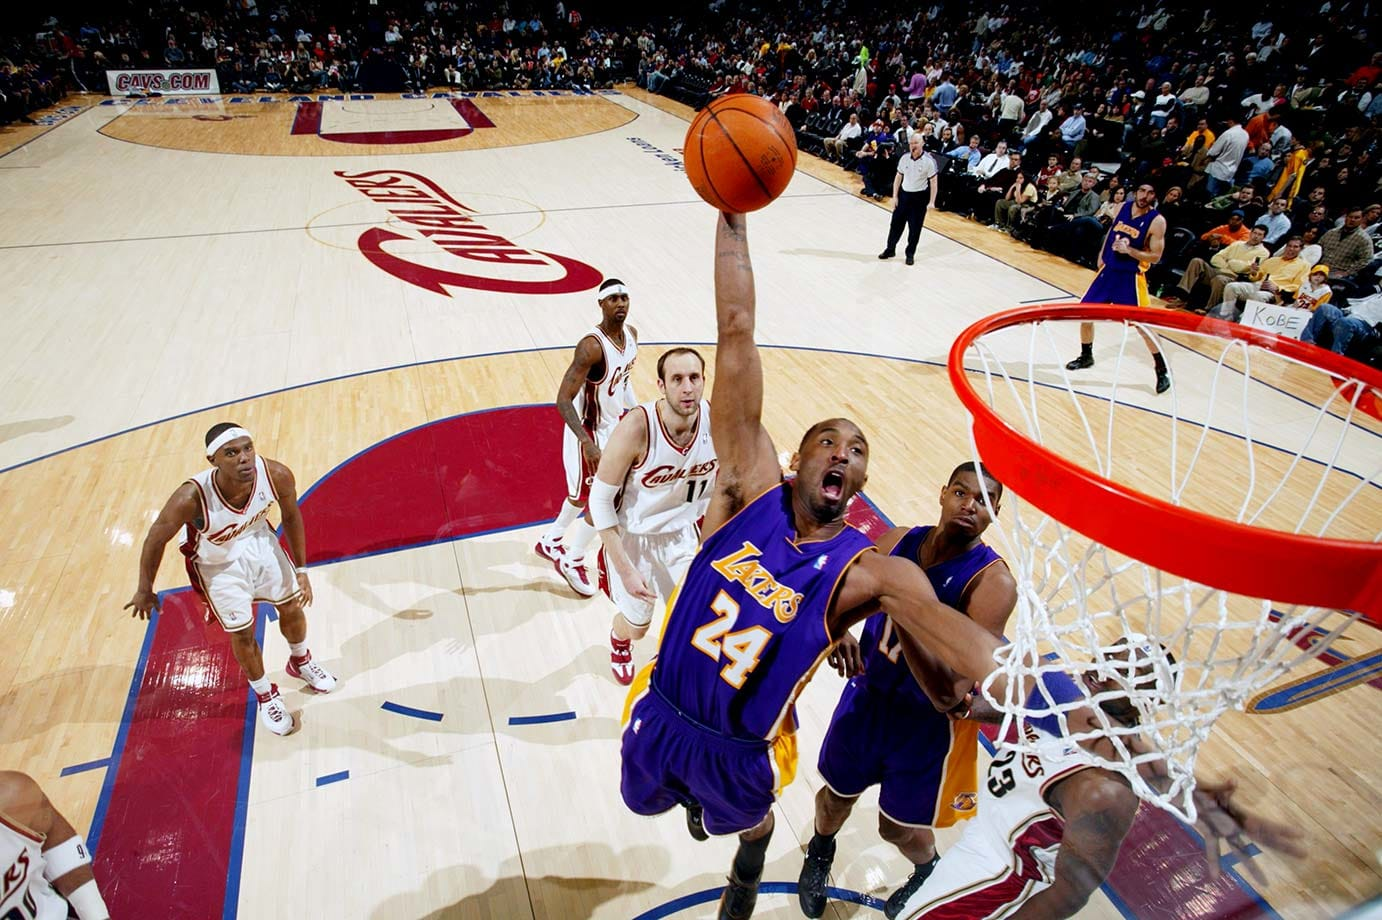 Kobe Bryant goes up for a dunk against the Cleveland Cavaliers on Feb. 11, 2007